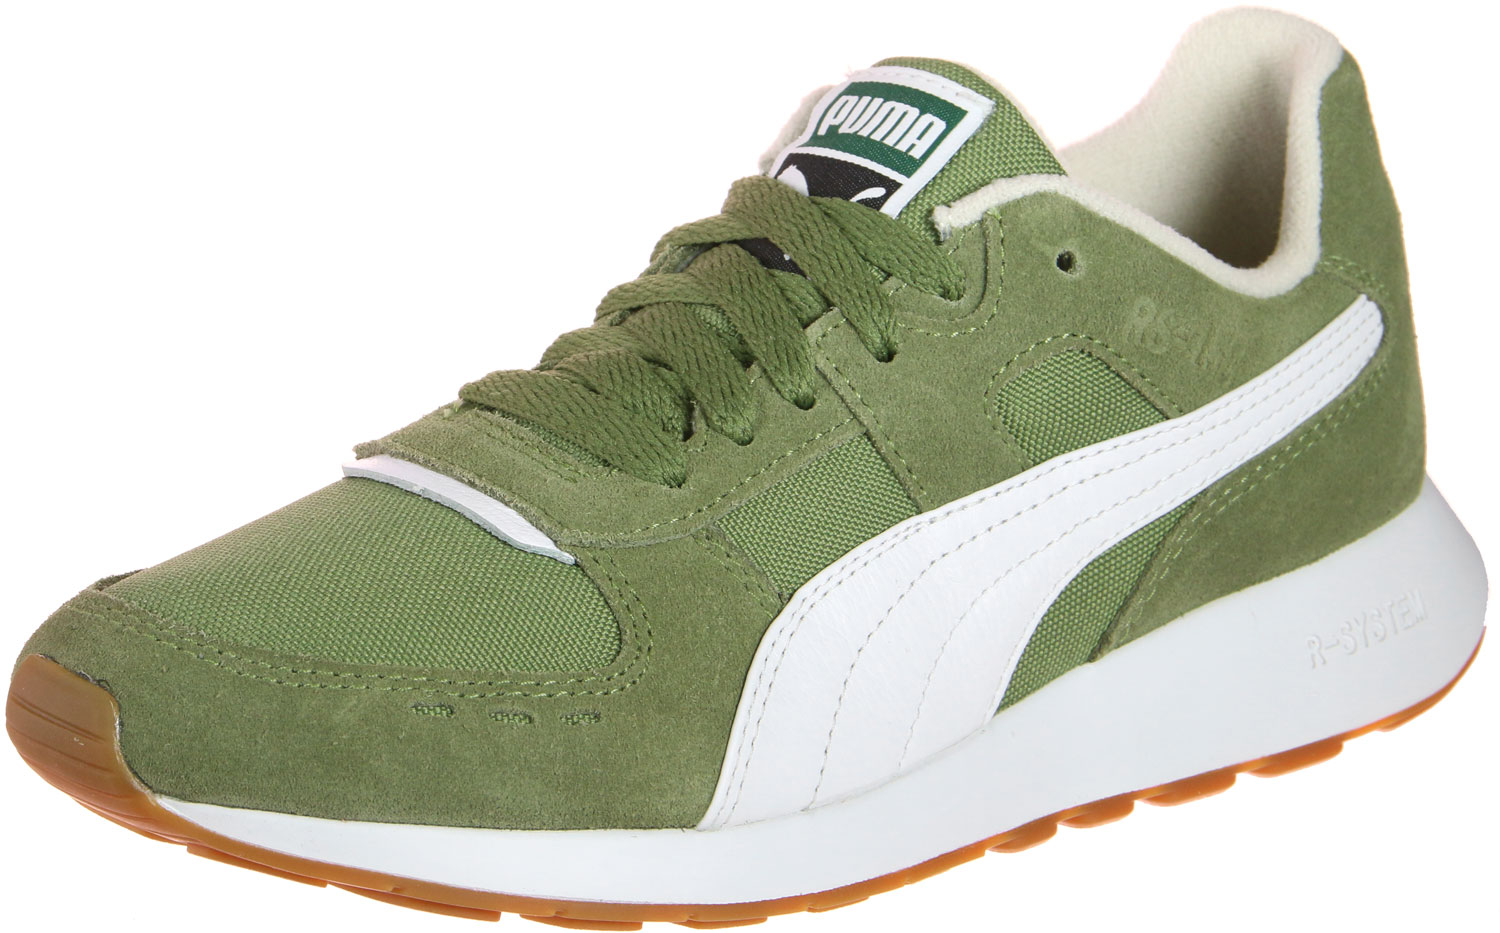 Puma RS-150 Nylon W - Sneakers Low at